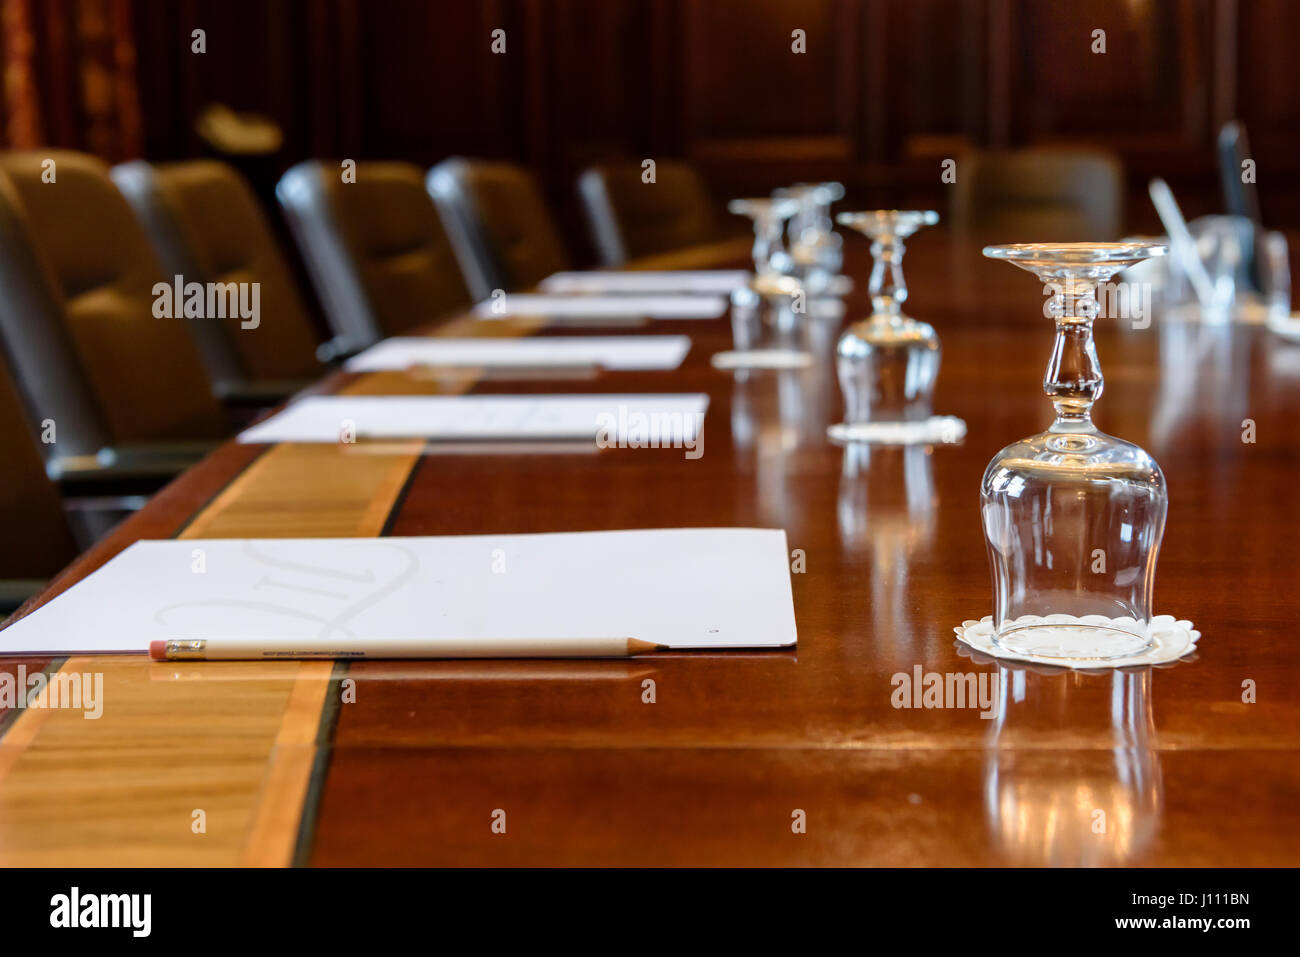 Large wooden table in a board room with wood panelling, set up for a meeting - Stock Image